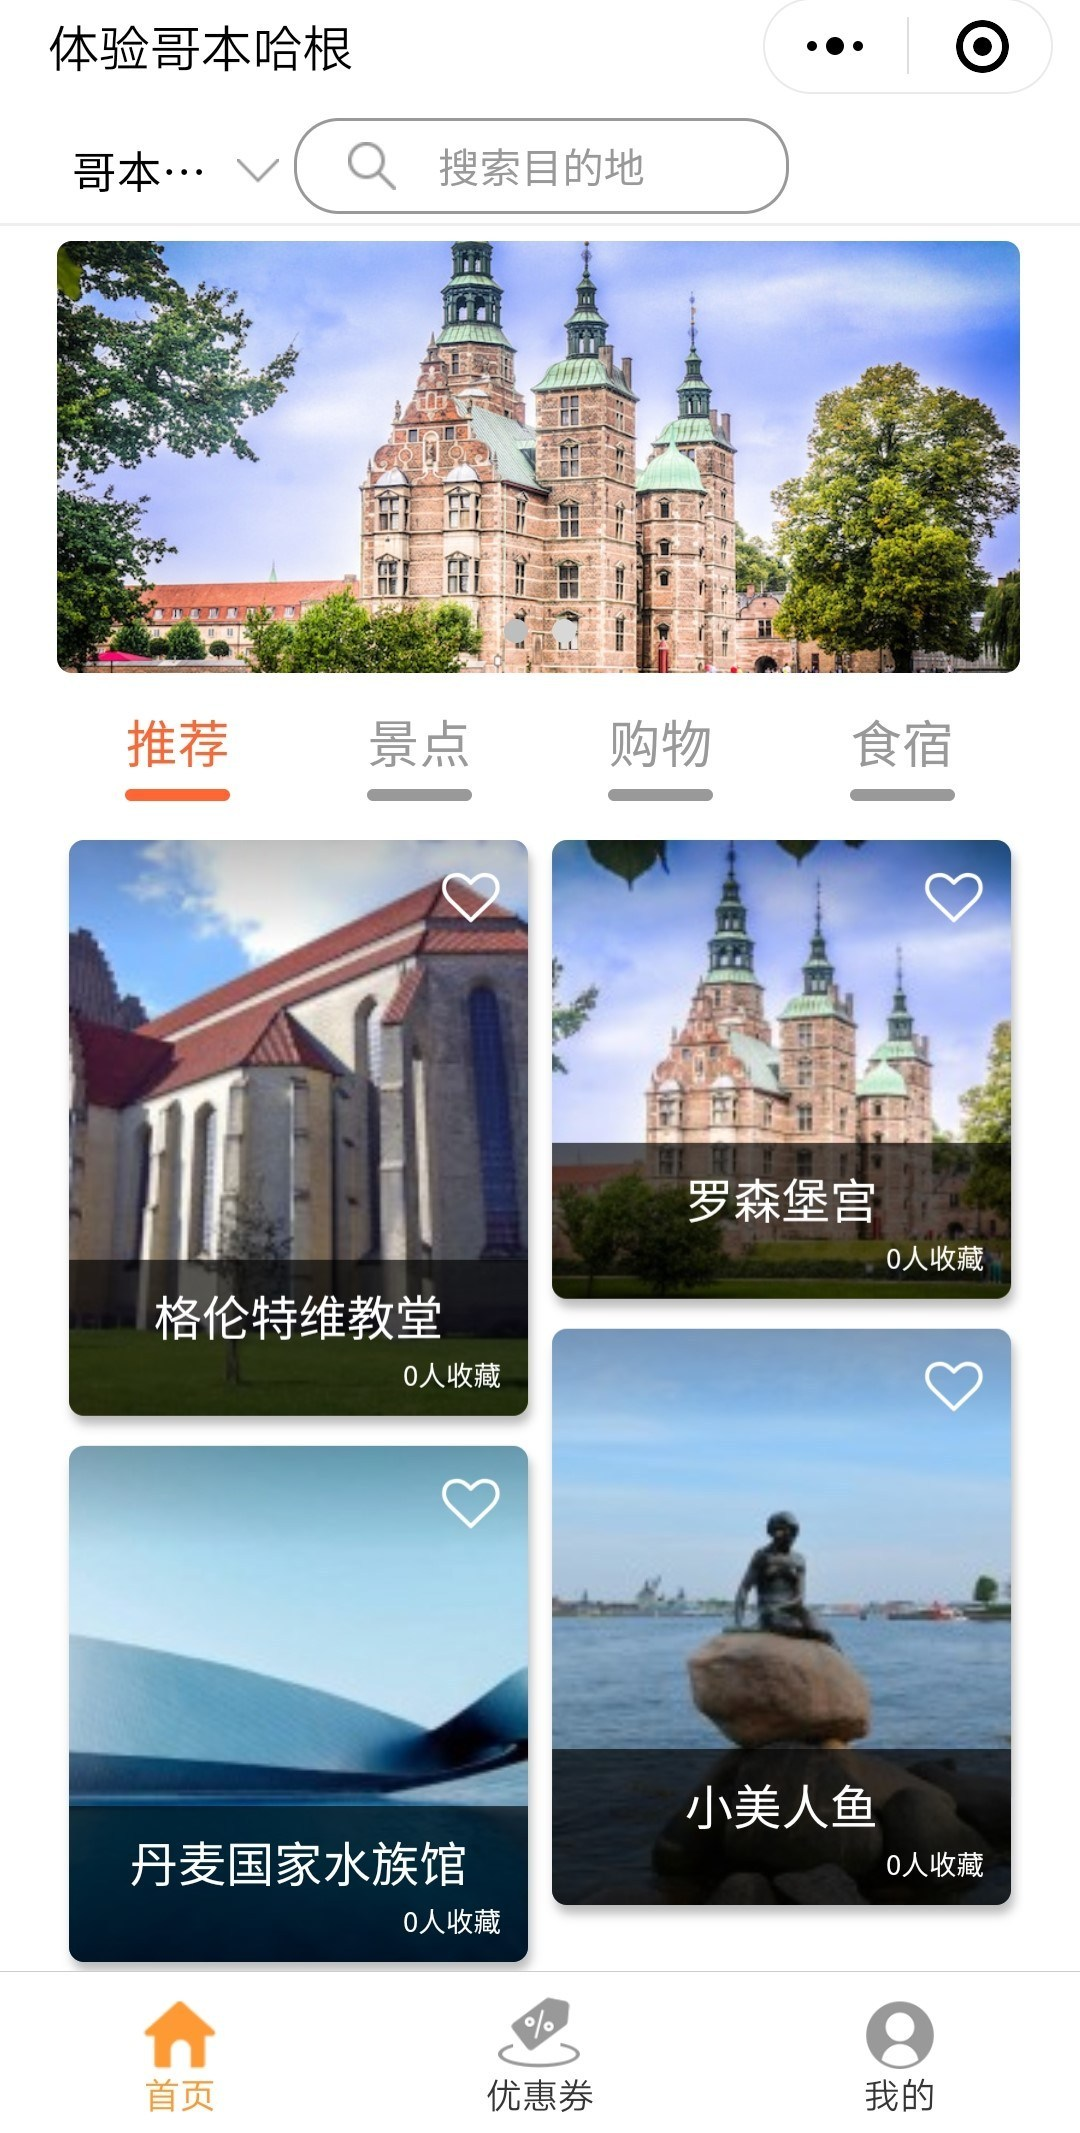 Copenhagen Chinese Social Media Platforms Marketing - EuroPass